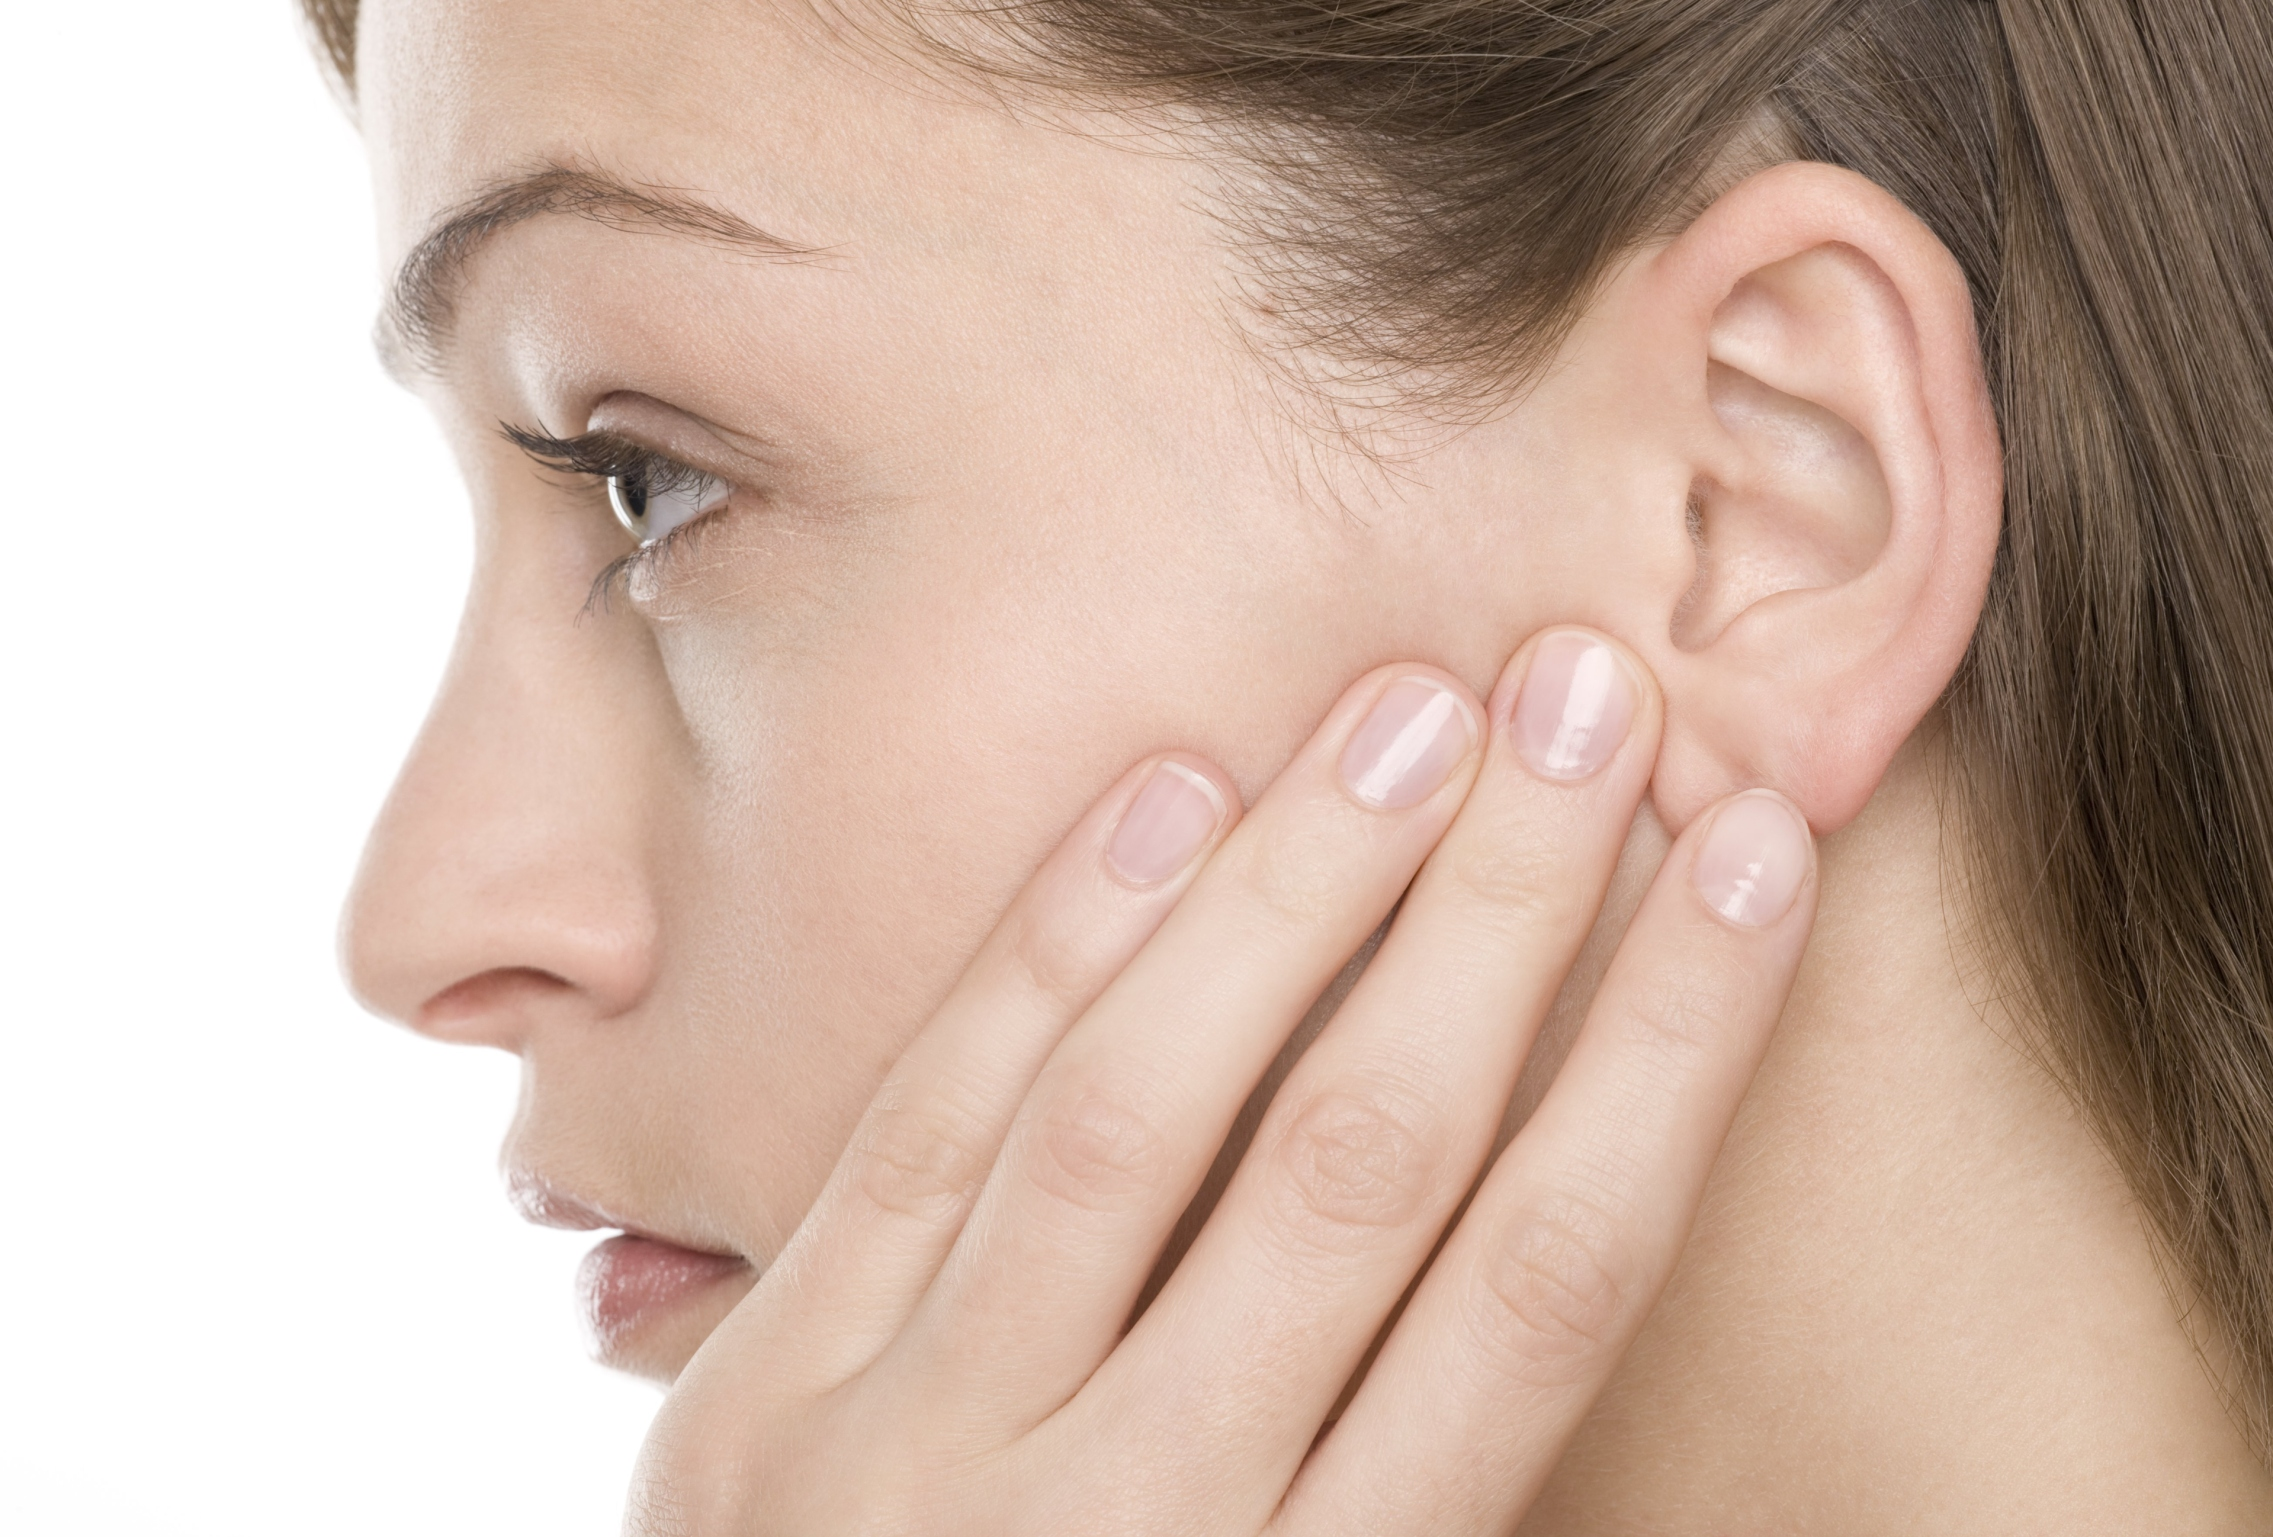 Pain in the ear when swallowing